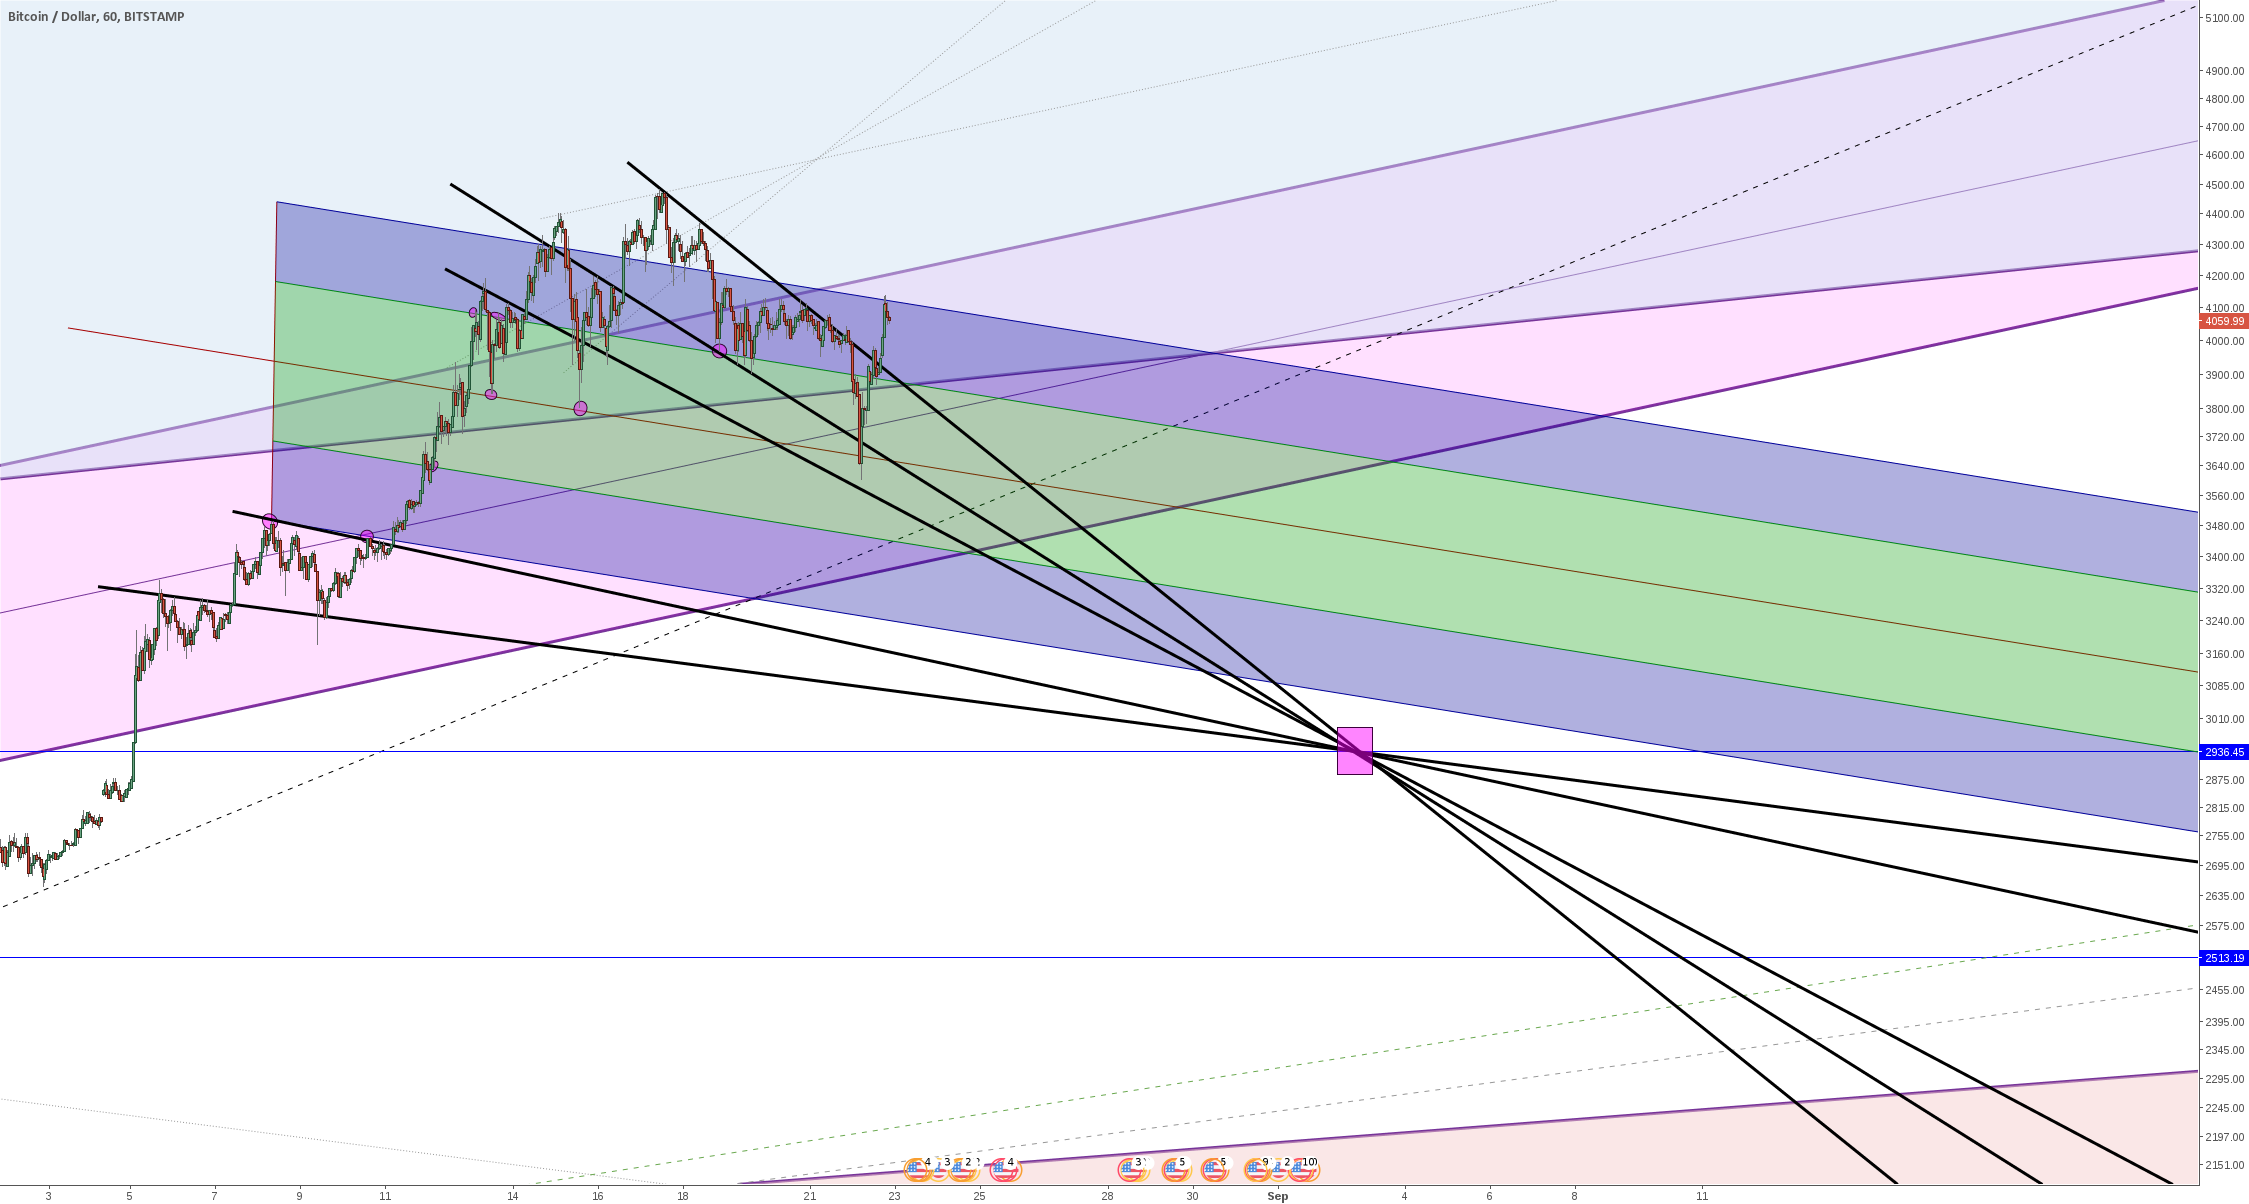 Bitcoin - remains in pitchfork, further downward imminent